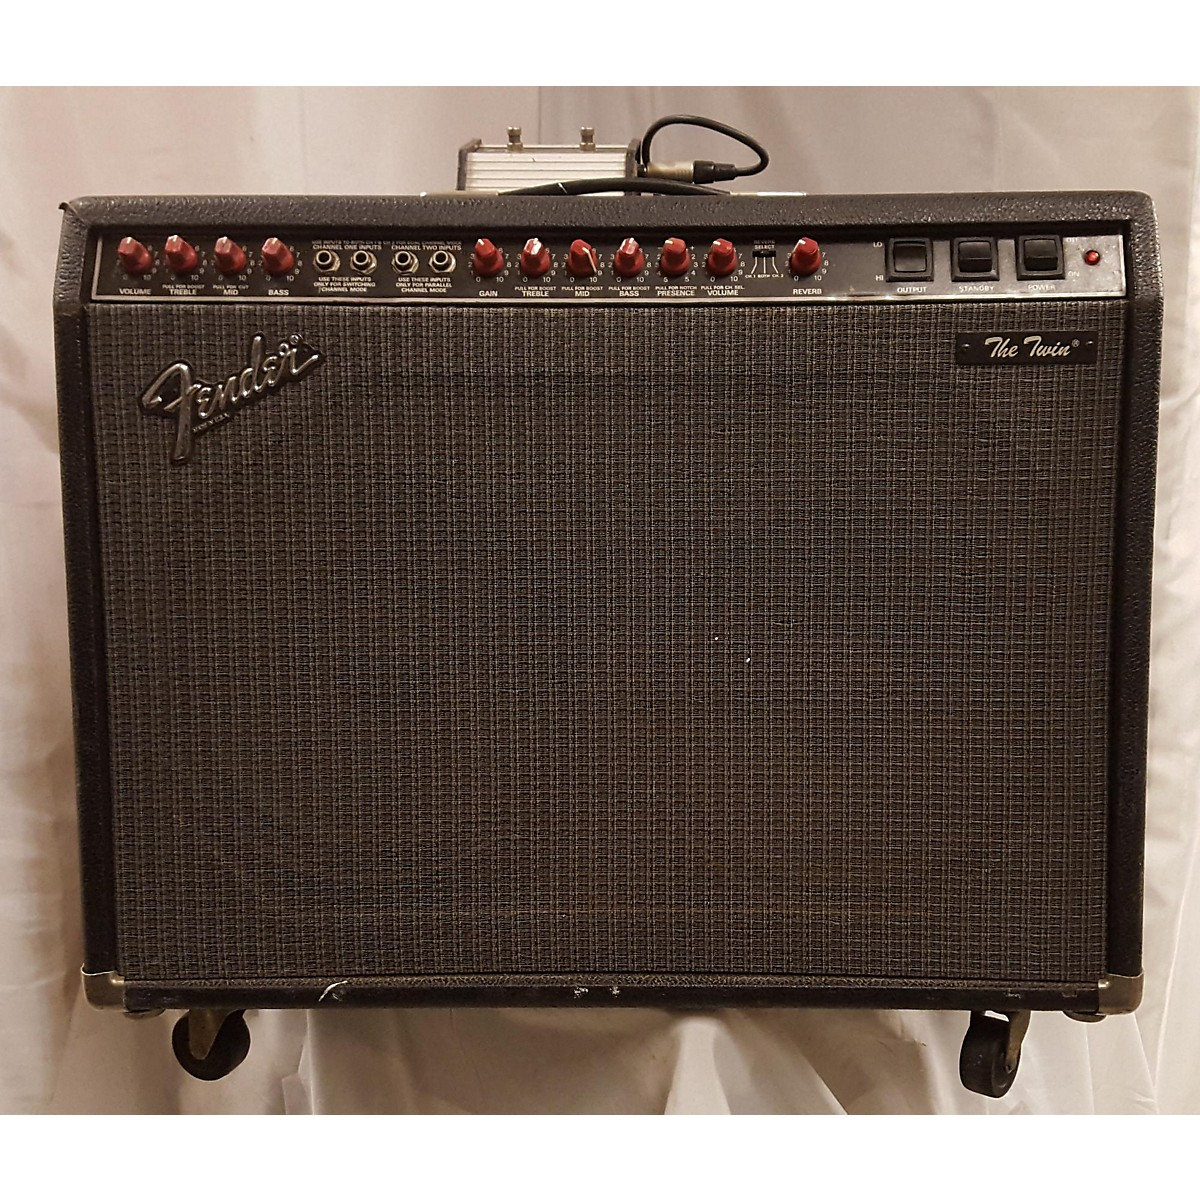 Fender 1980 The Twin Guitar Power Amp